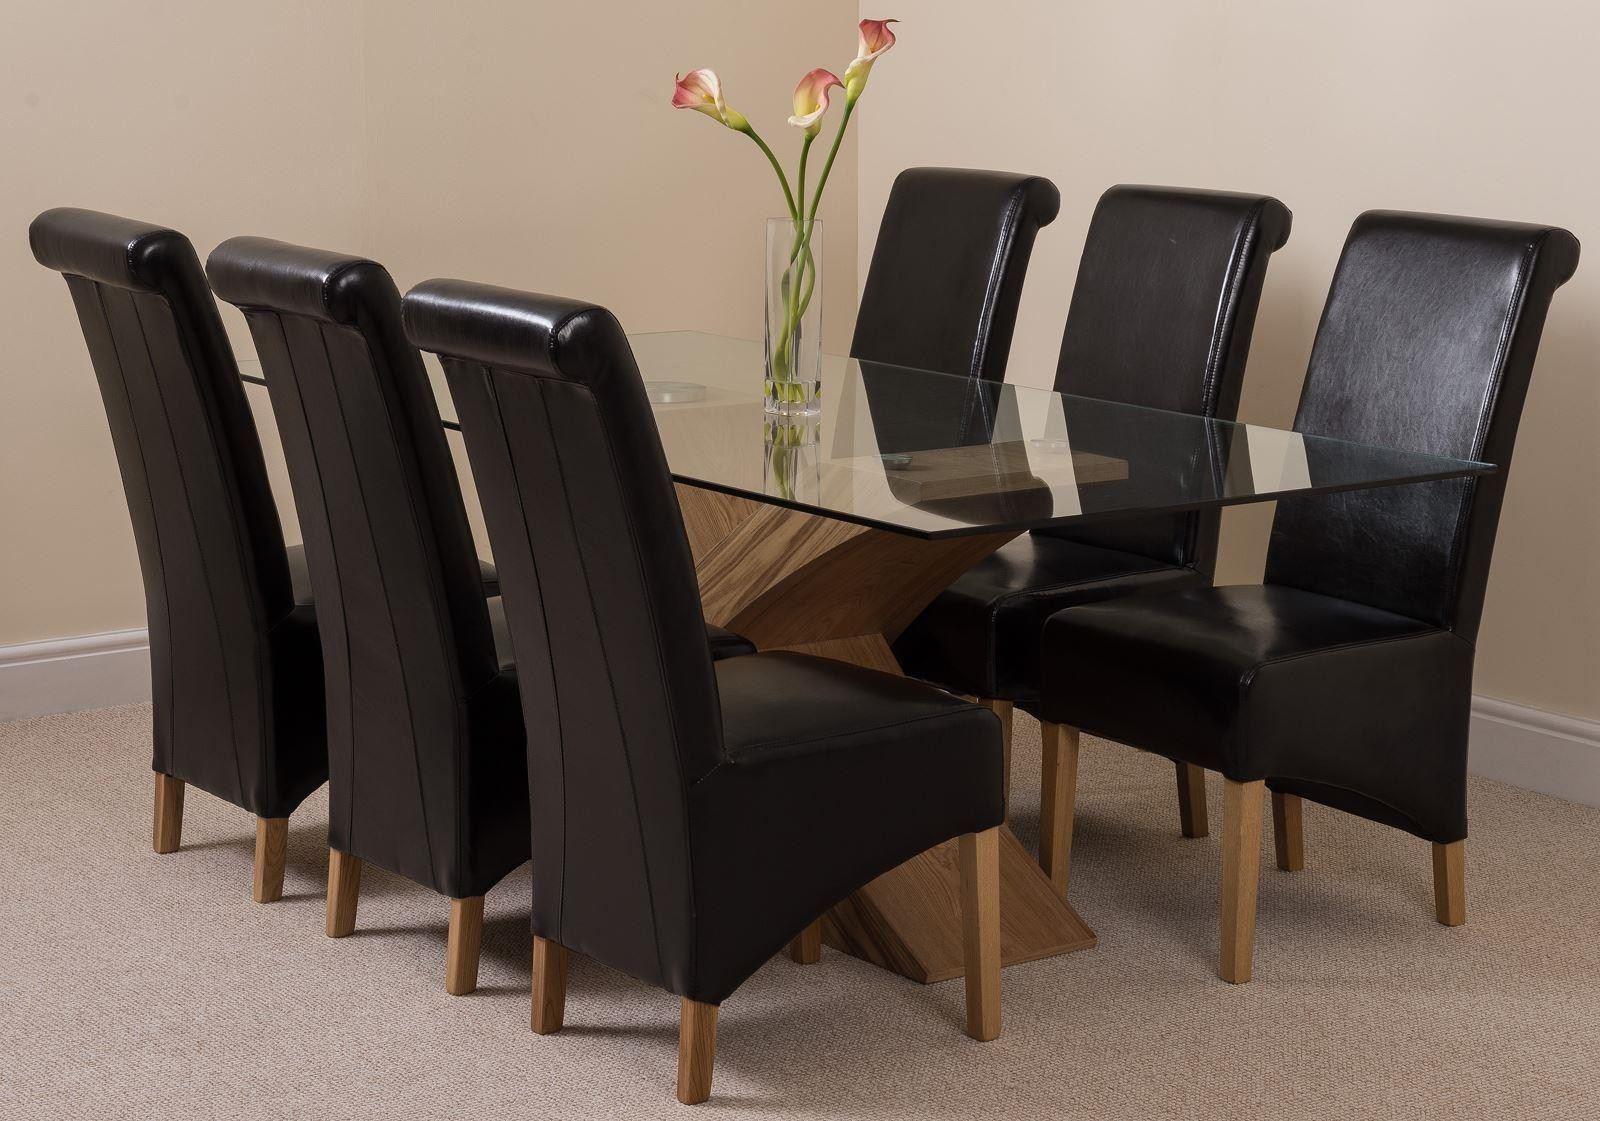 Valencia Oak 200cm Wood and Glass Dining Table with 6 Montana Dining Chairs [Brown Leather]